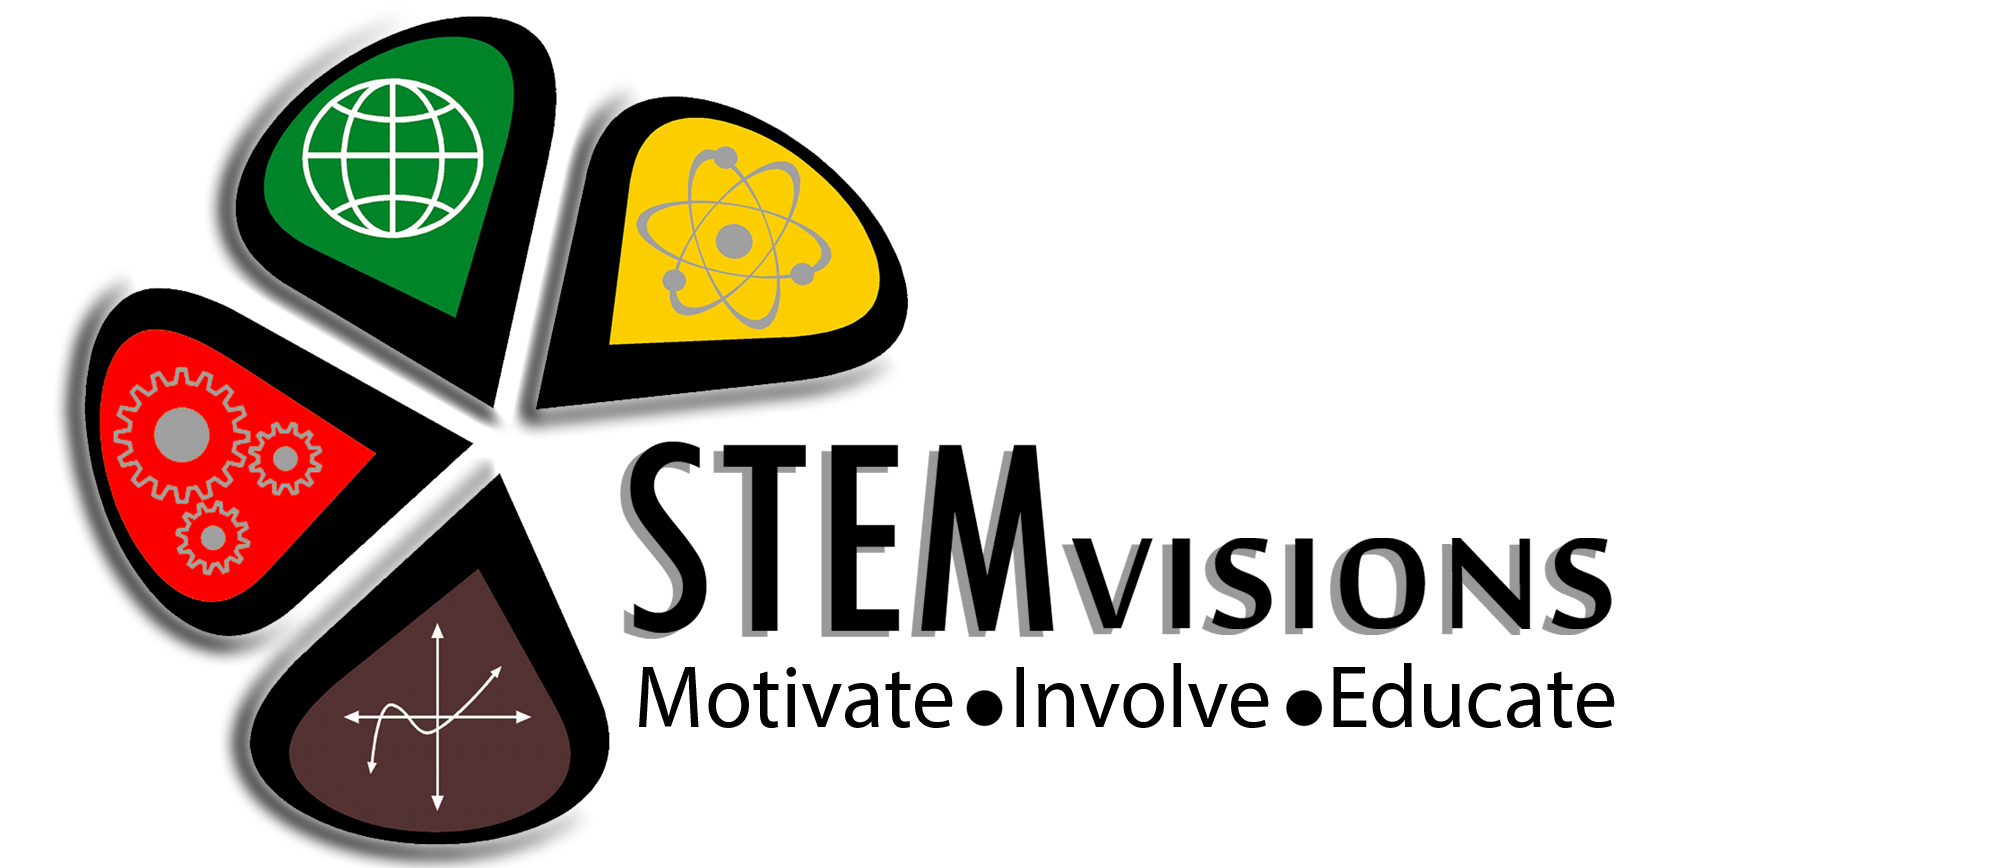 Welcome to STEM Visions